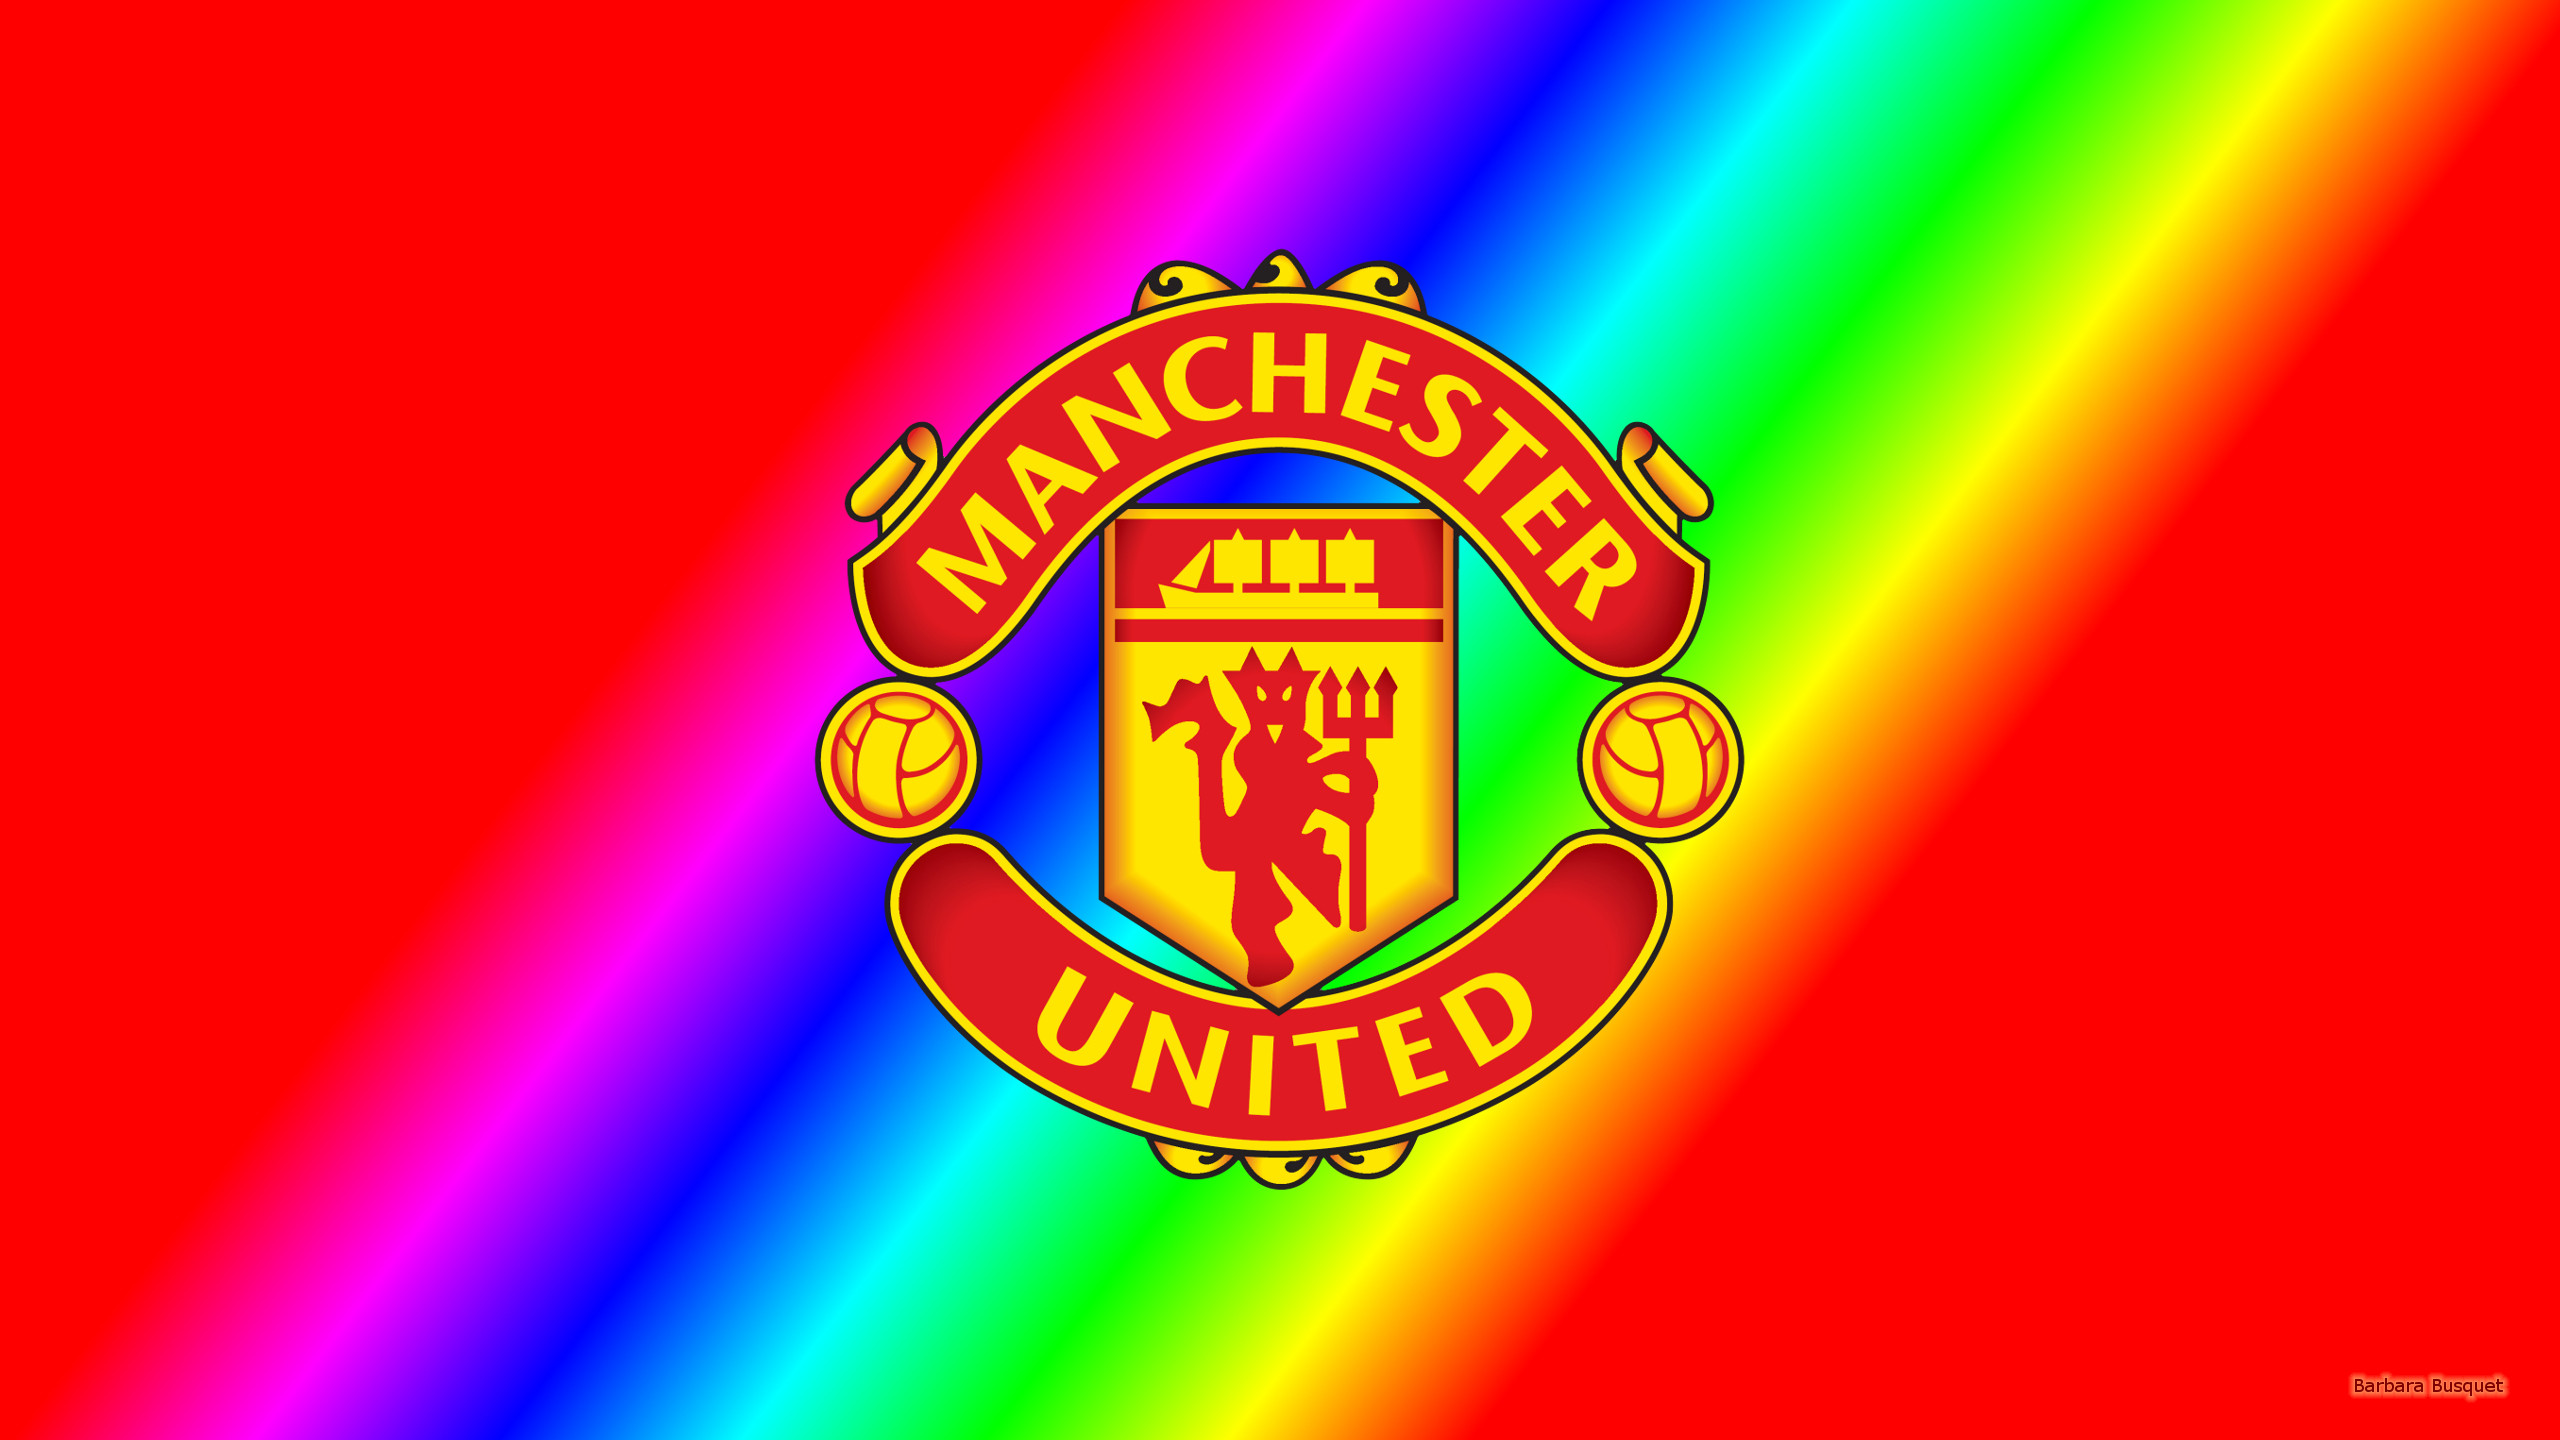 Red rainbow wallpaper with Manchester United logo.